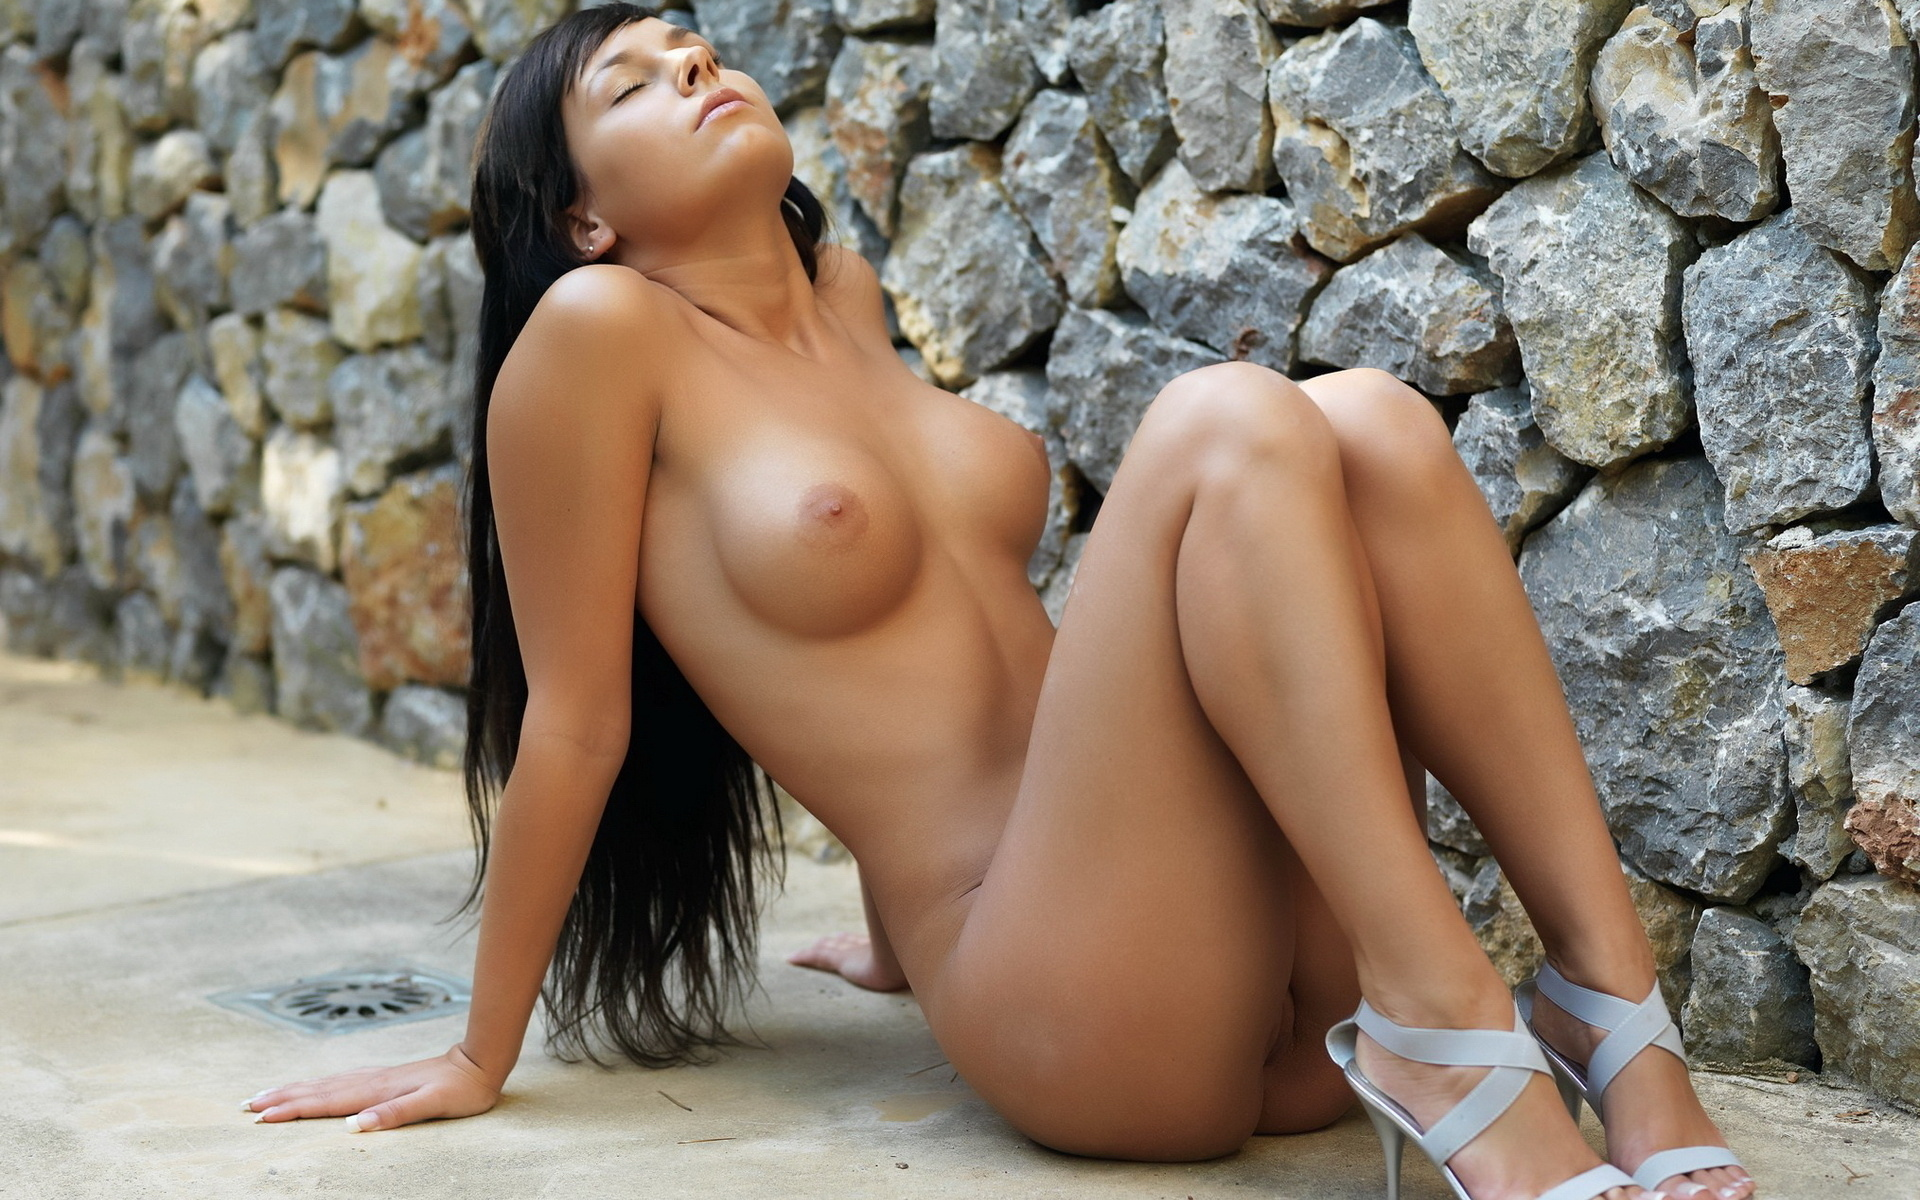 North sexy girls nacked photos, hot italians girls